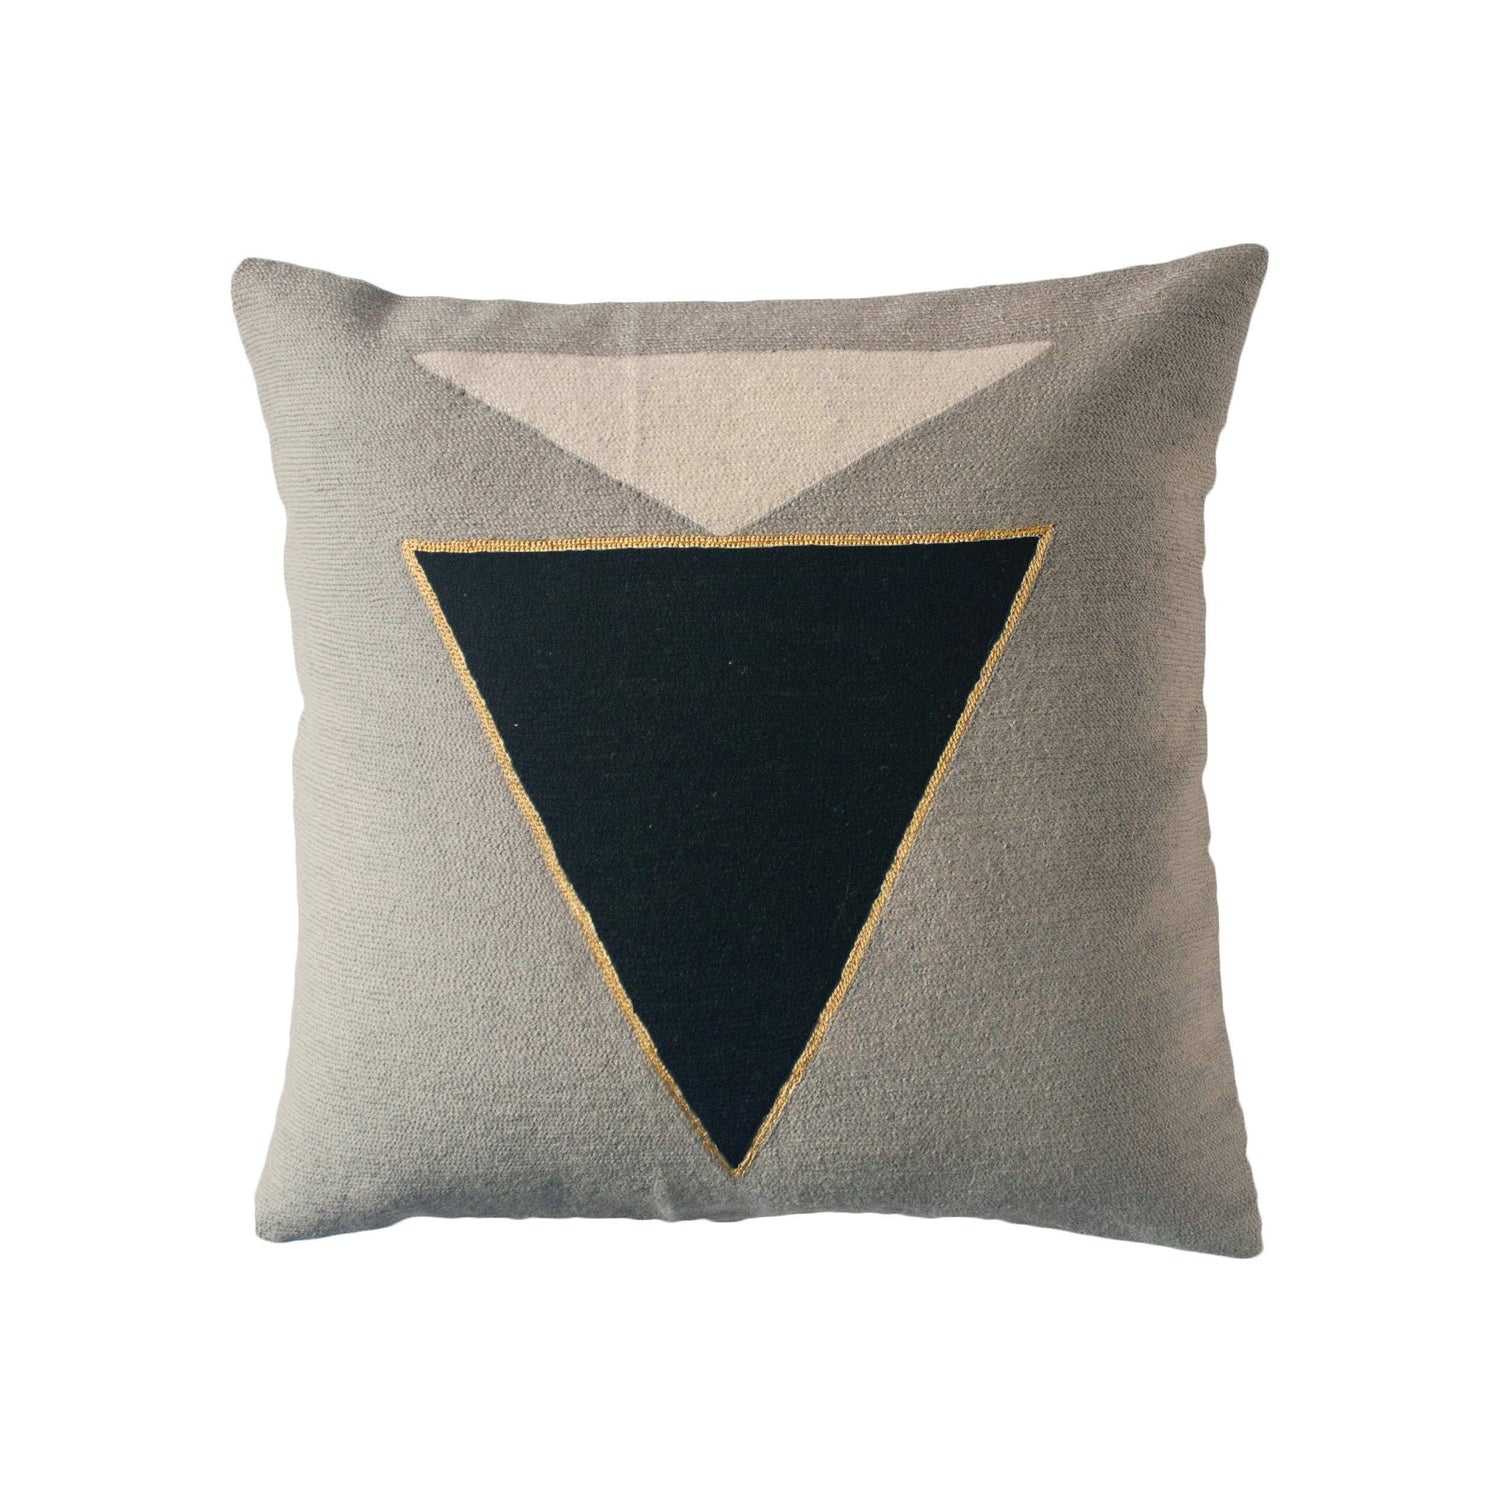 Leah Singh MIDNIGHT JEWEL PILLOW Pillow Leah Singh